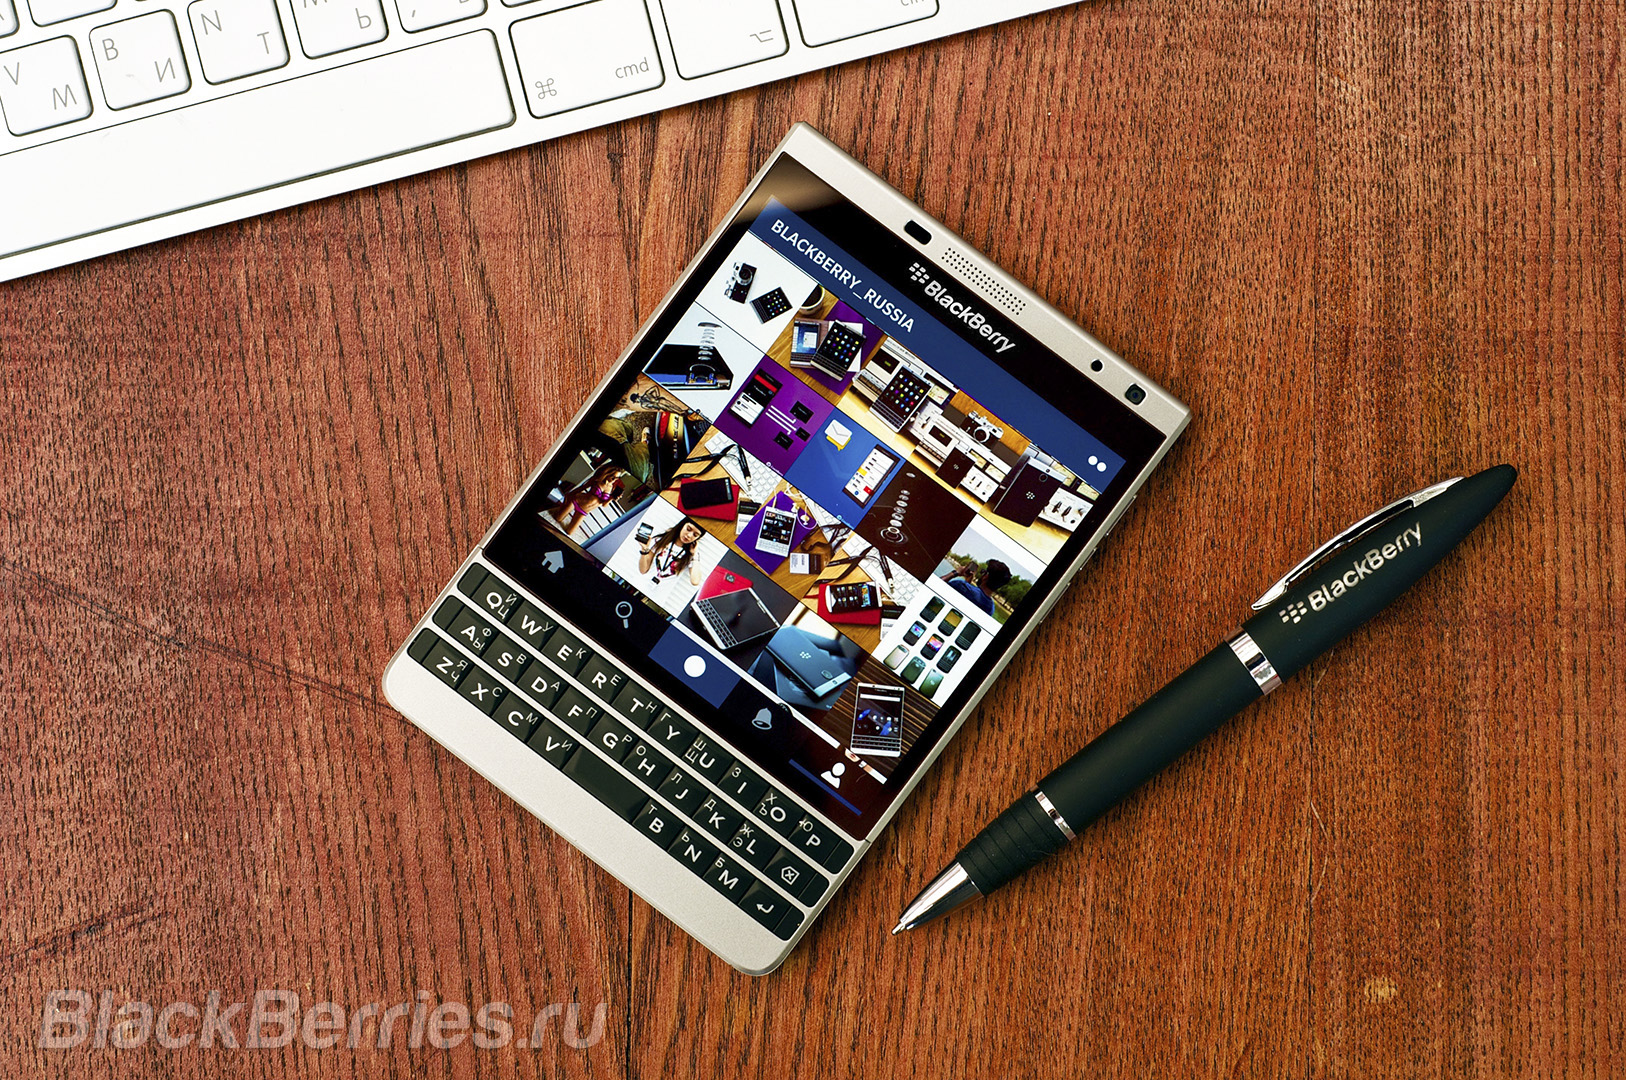 Black Berry Applications 26